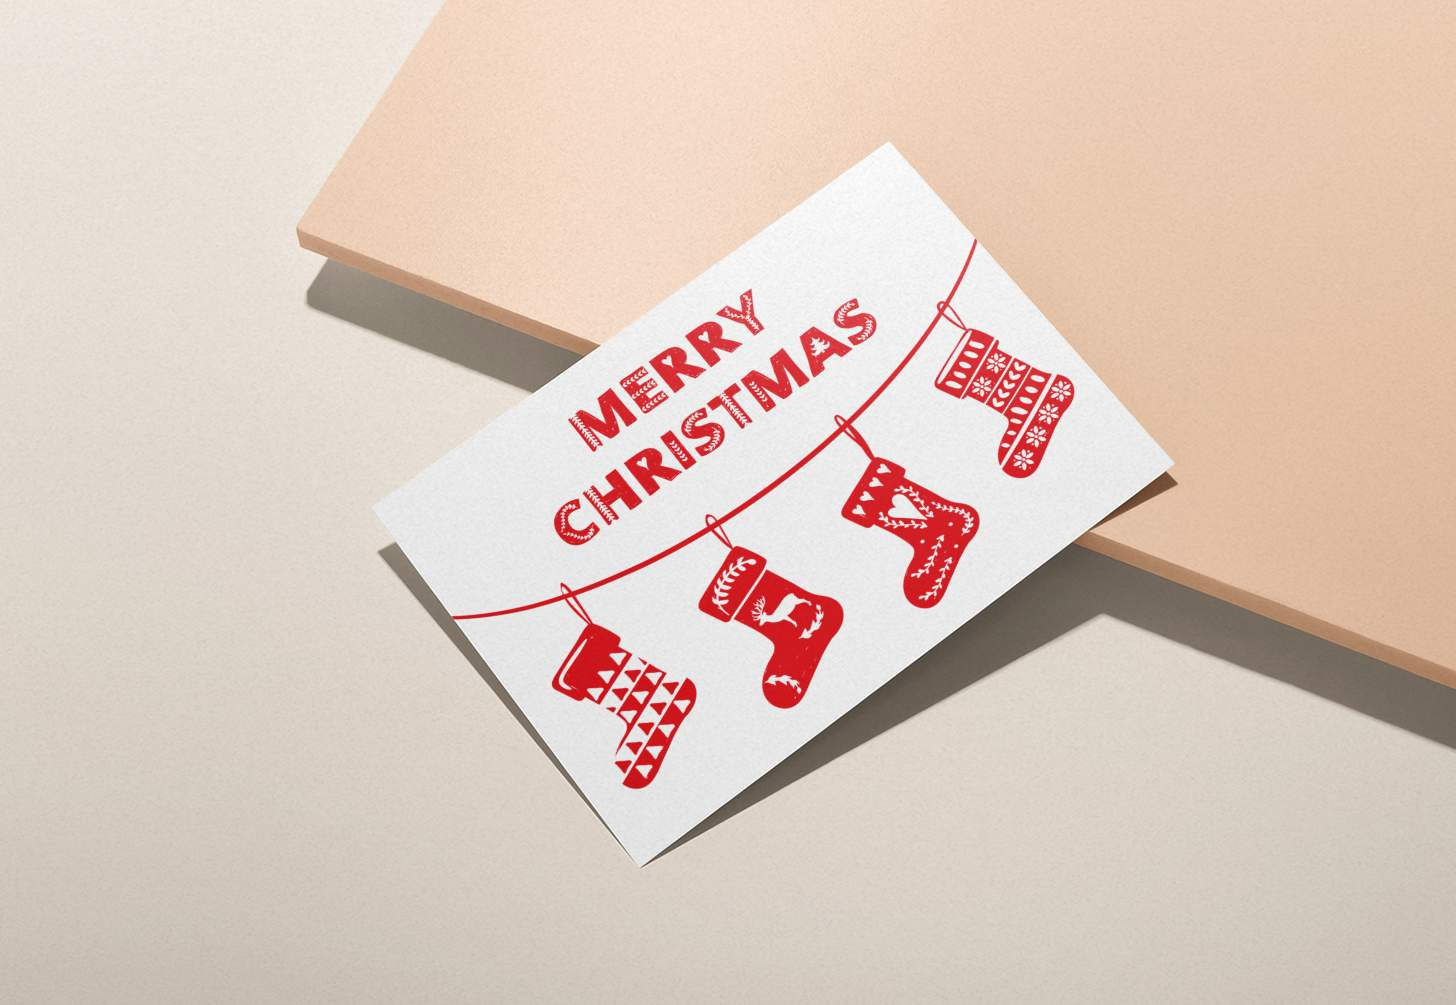 Hands holding red and white Merry Christmas with stockings design on pink background